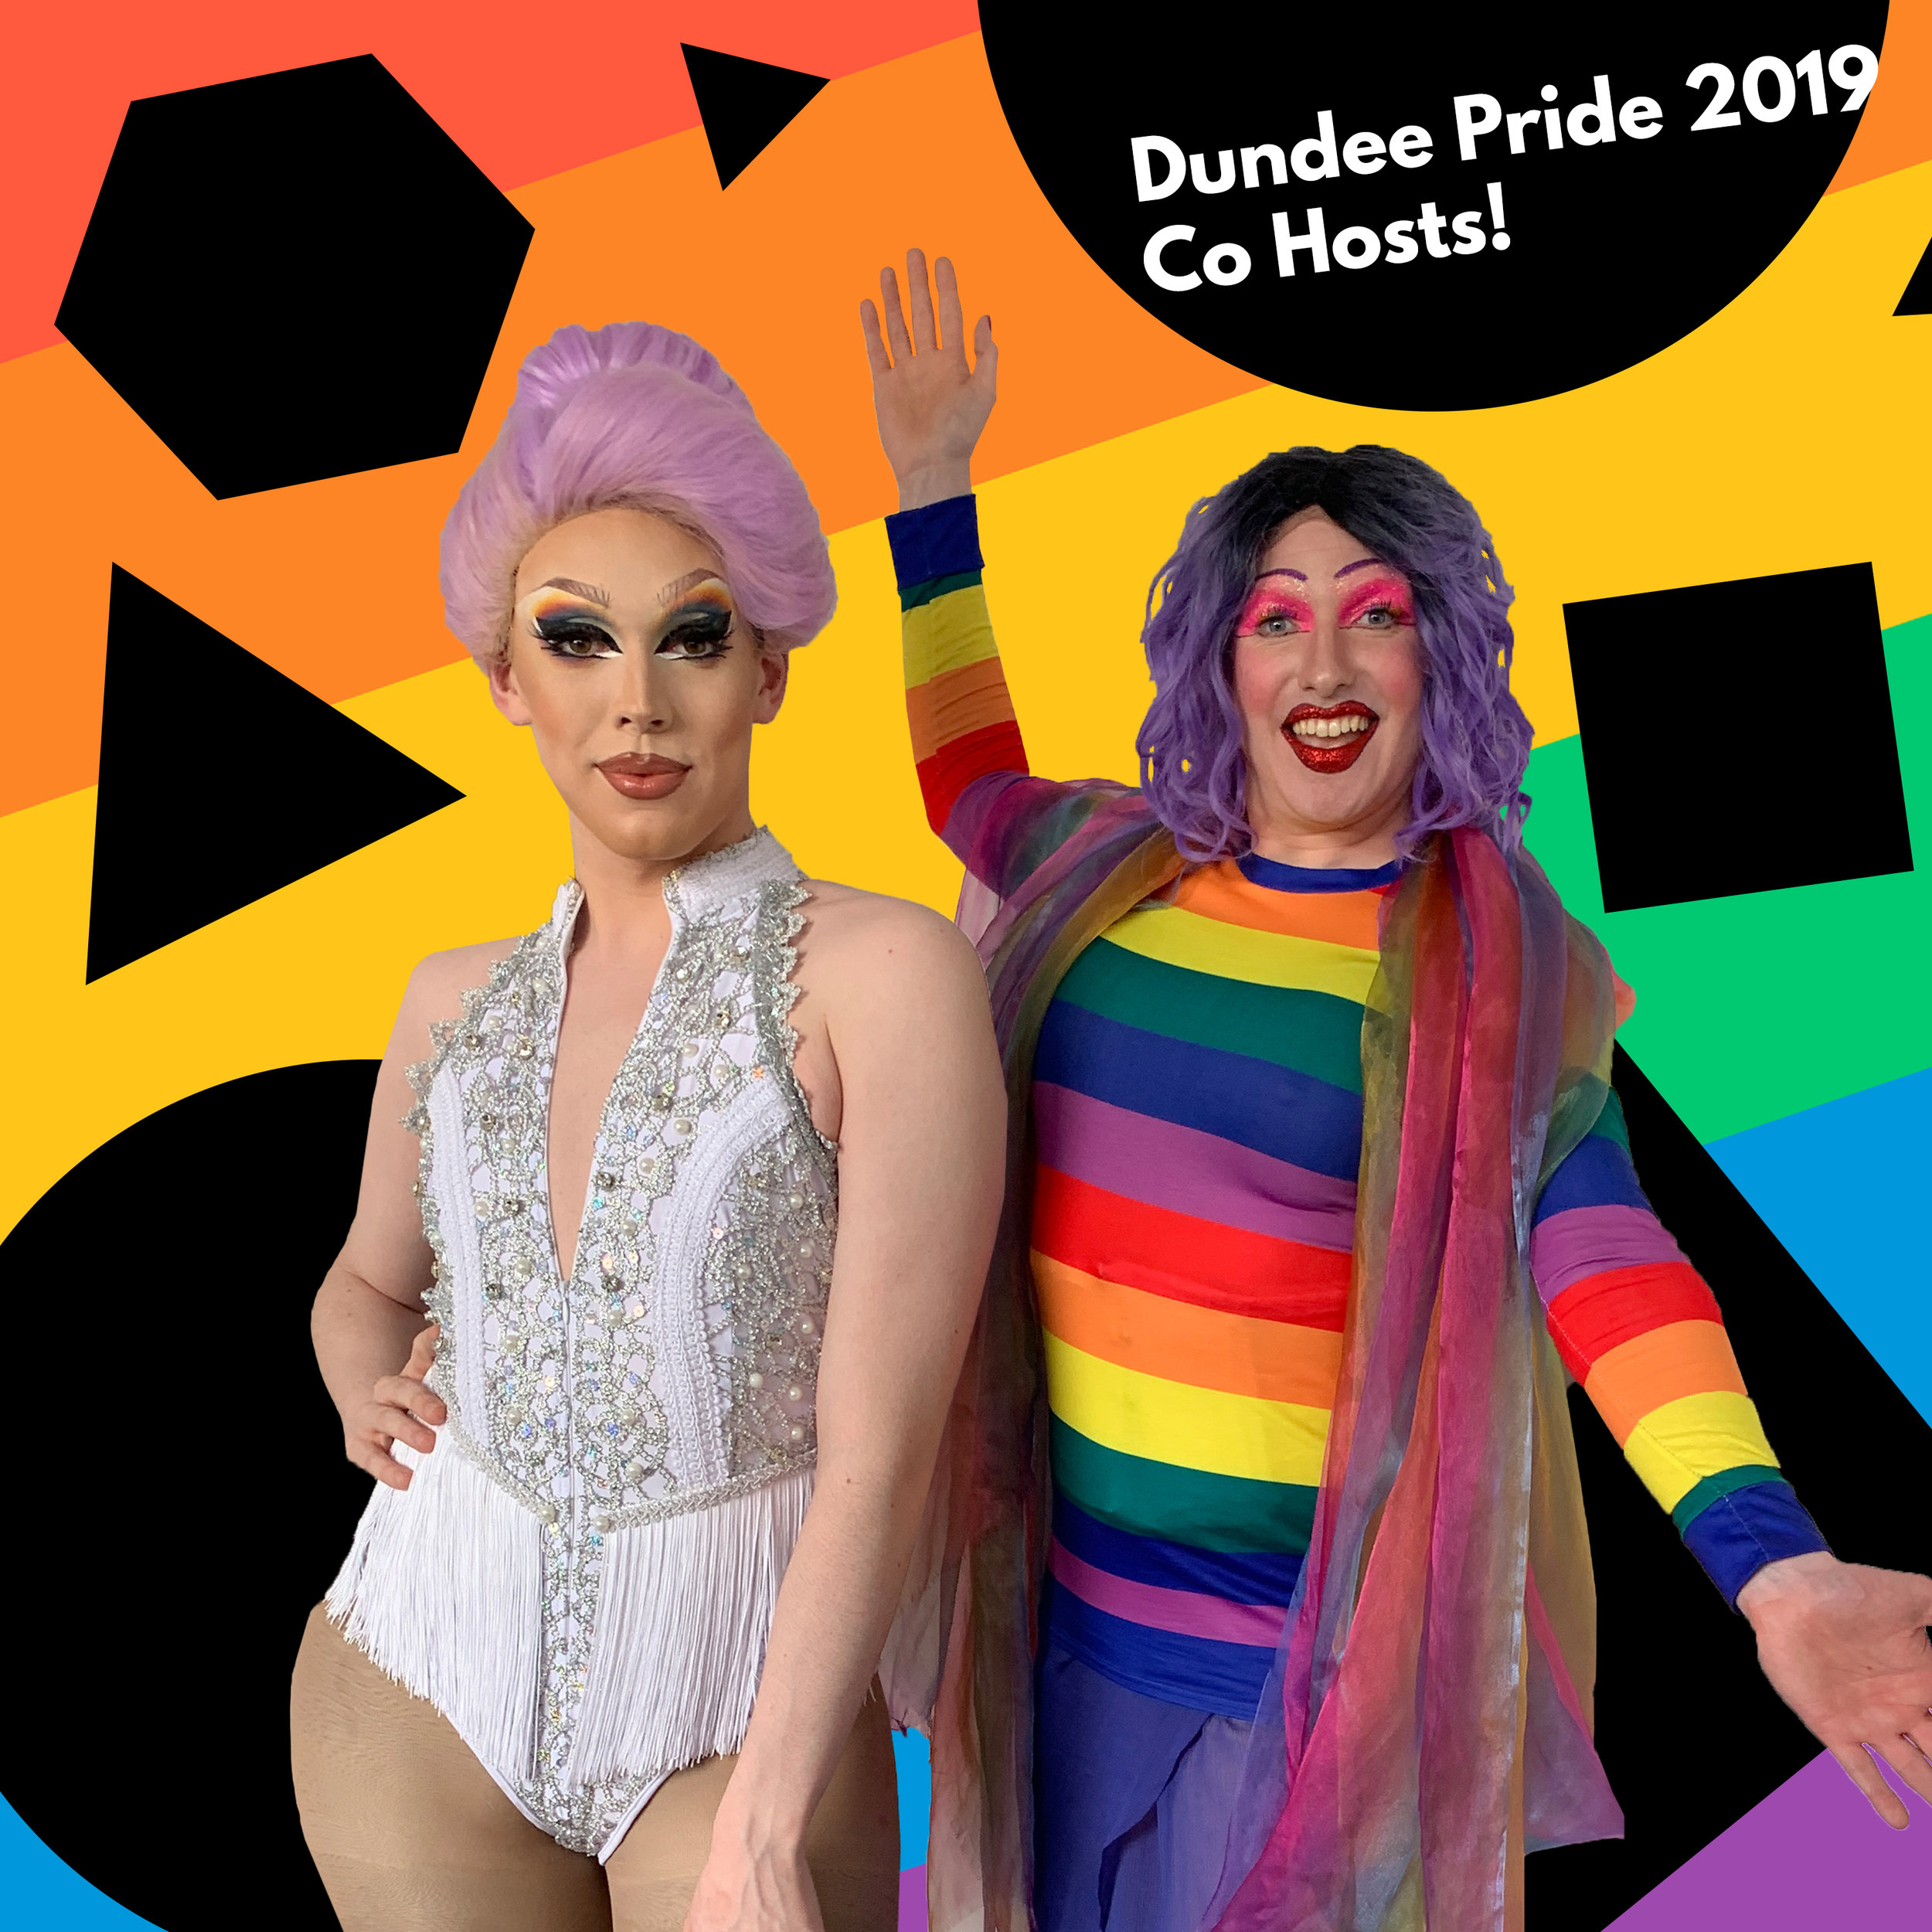 the fabulous Miss Peaches and Buschie Fandango will be your co-hosts for dundee pride 2019. - Hear them talk about their roles at Dundee Pride 2019 in episode 2 of the Dundee Pride podcast with Tay FM here